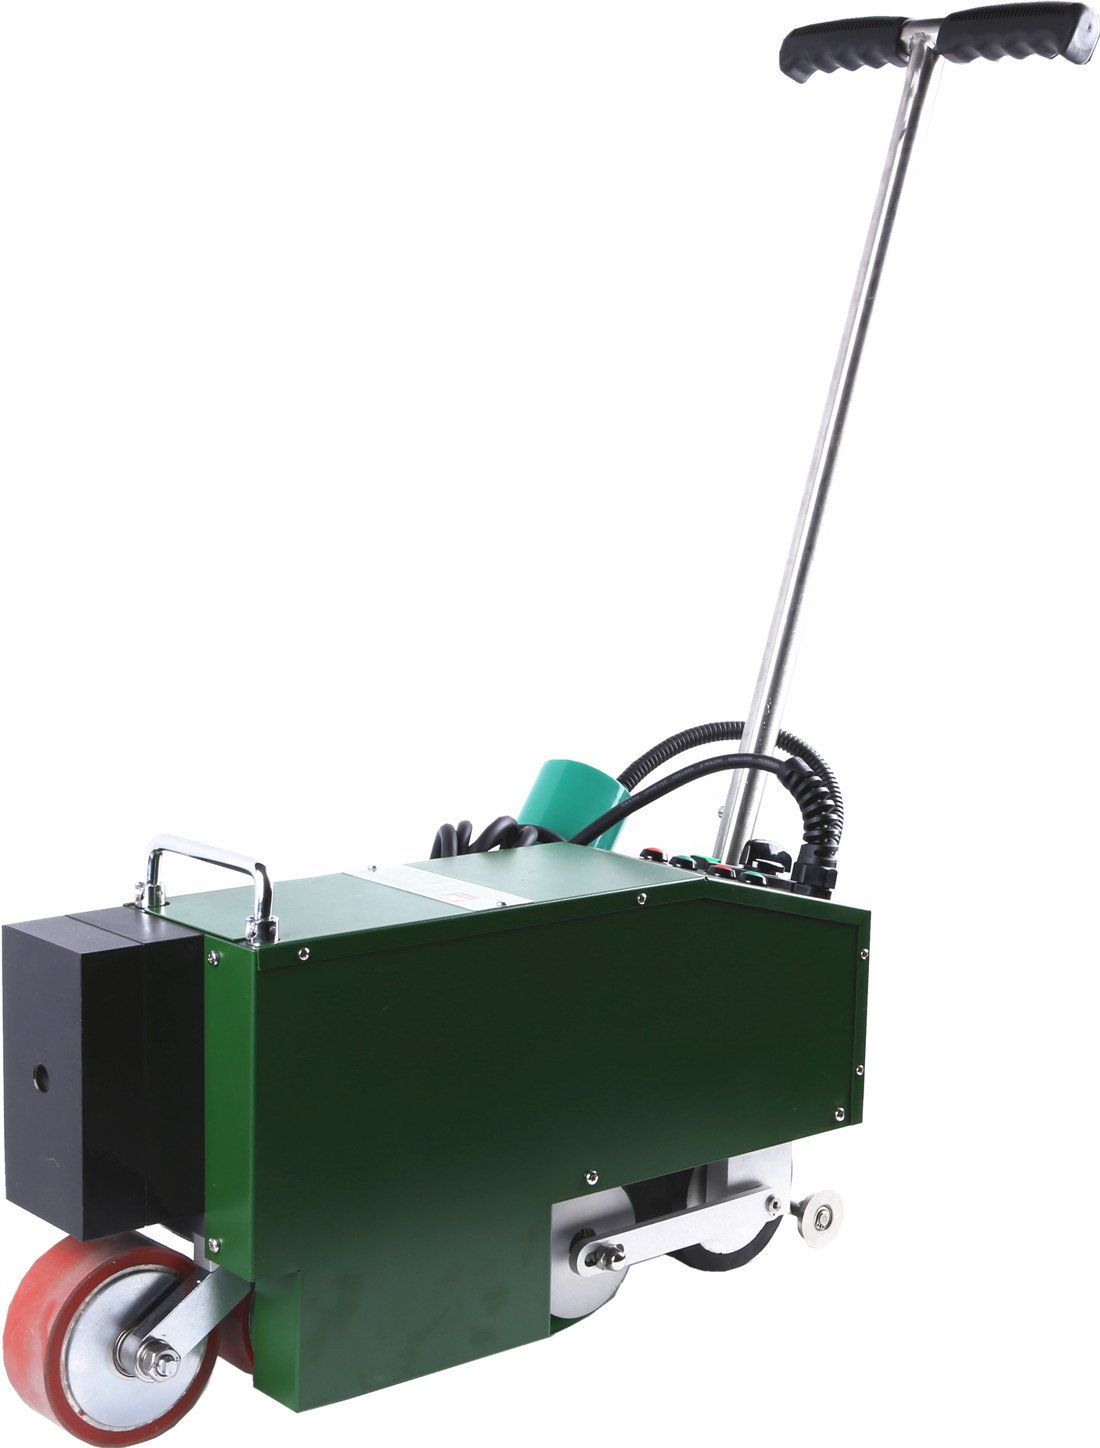 TPO PVC Roof Waterproofing Membrane Hot Air Welding Machine with Blushless Air Blower